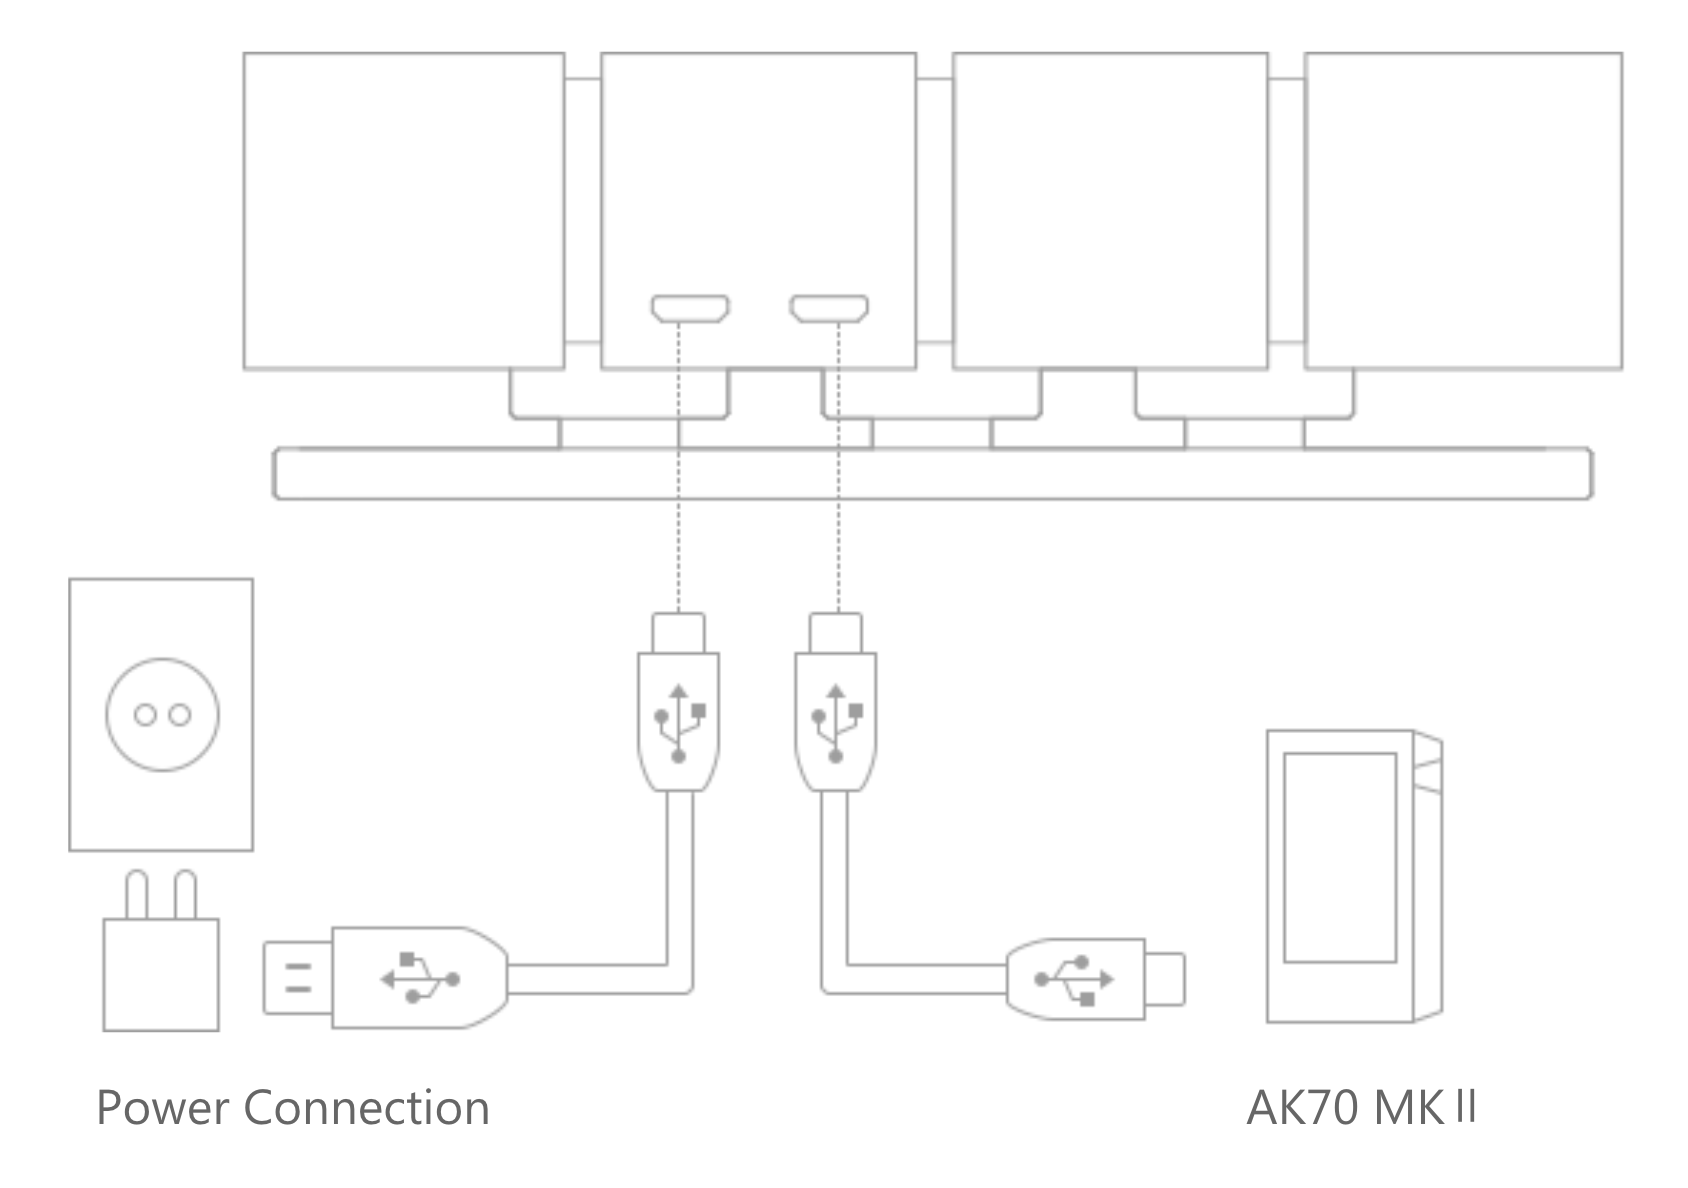 Ak70 Mkii Astellkern Us Online Shop 32 Watt Stereo Amplifier Circuit Pictures To Pin On Pinterest The Ak Cd Ripper May Not Be Properly Recognized When Using A Power Supply Adapter Rated At Less Than 5v 2a